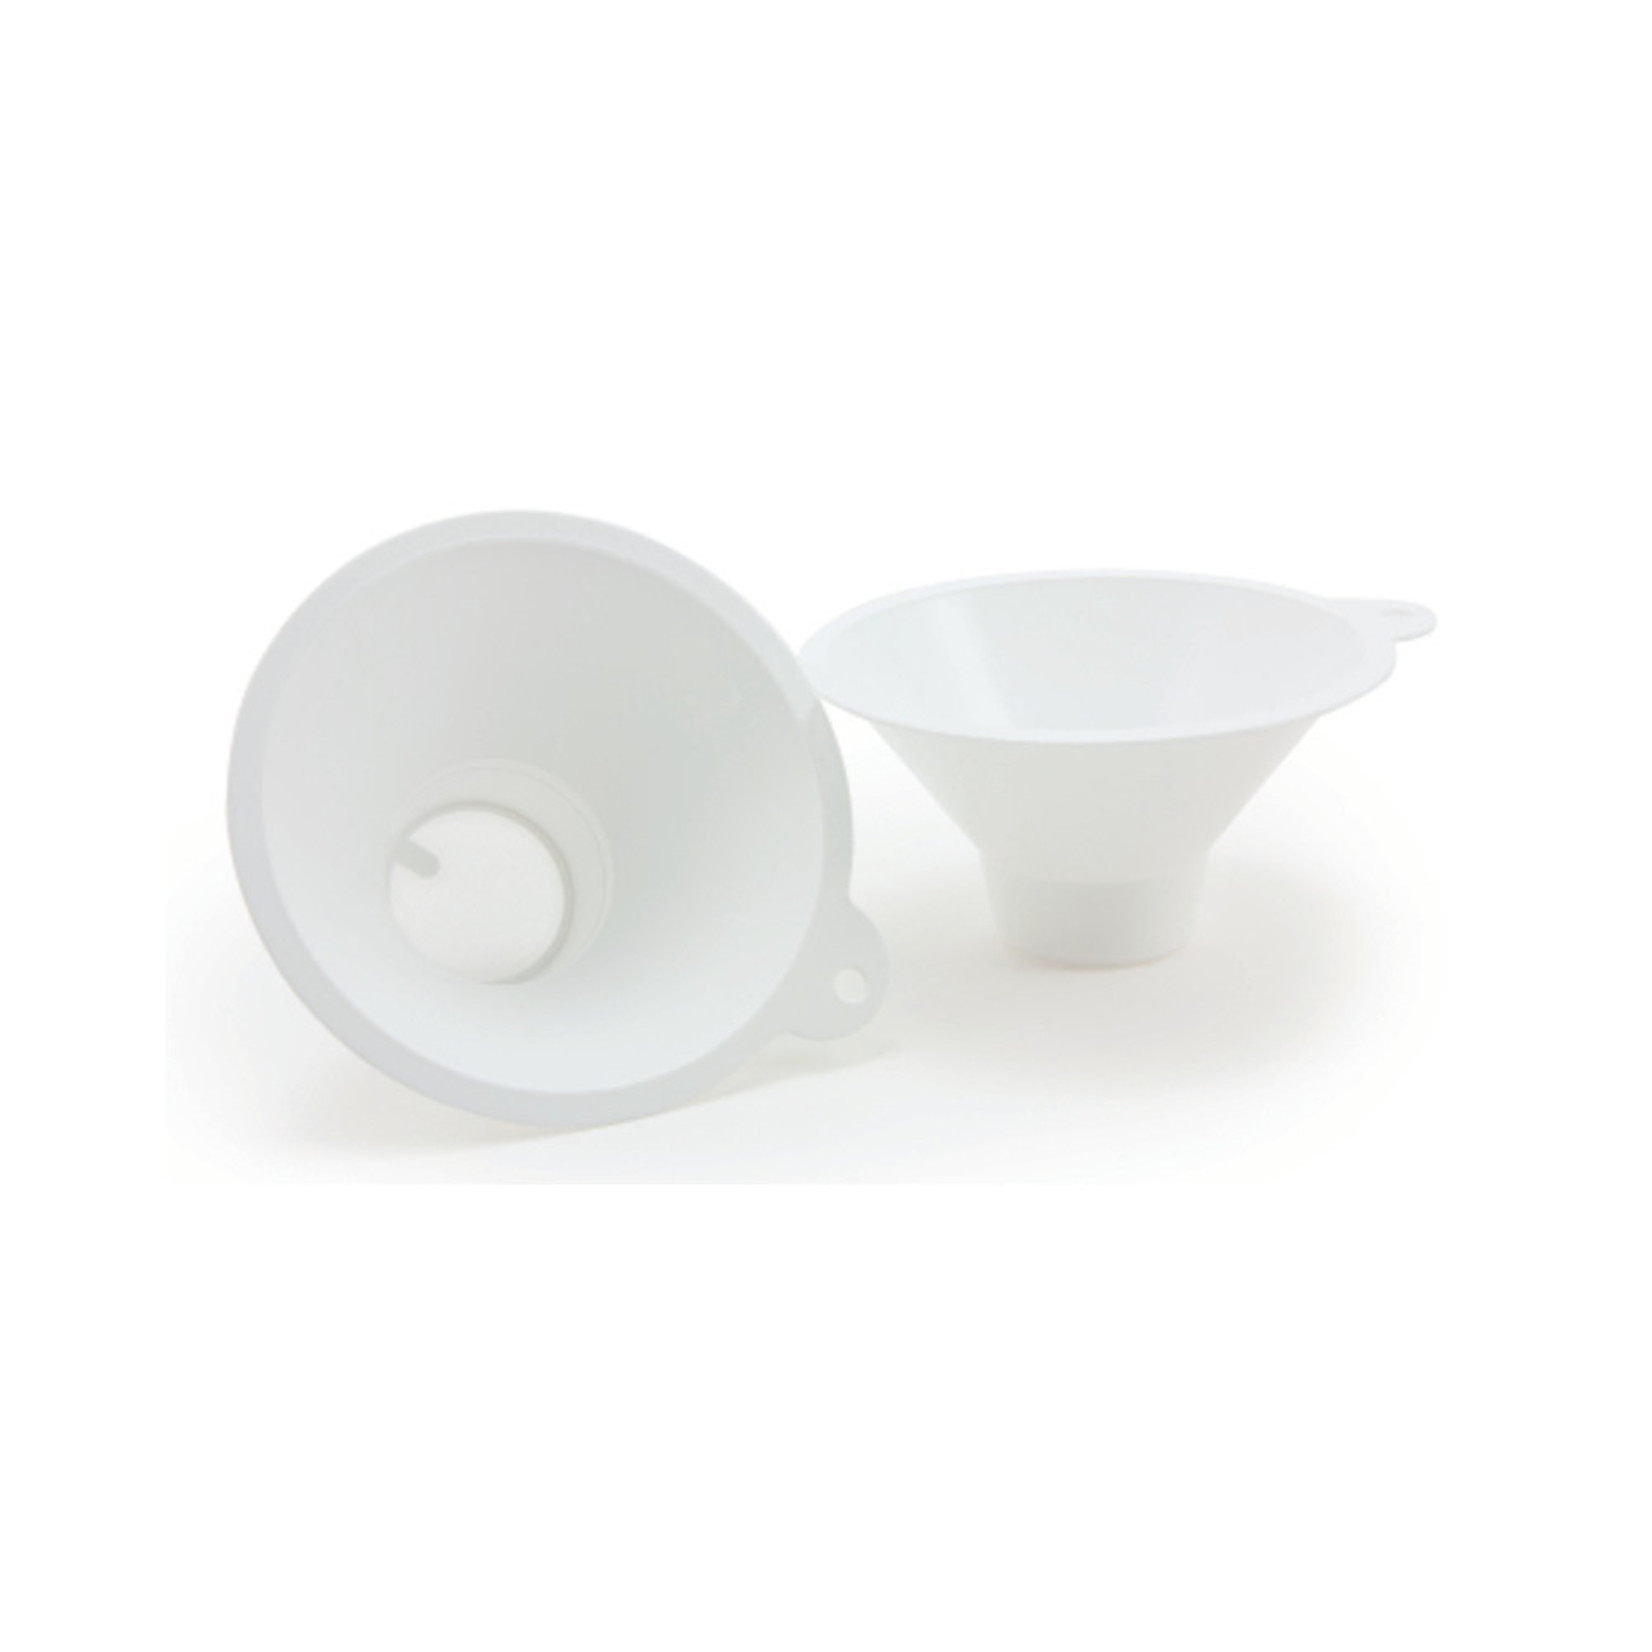 Flamingo Care Products Kidney Stone Strainers